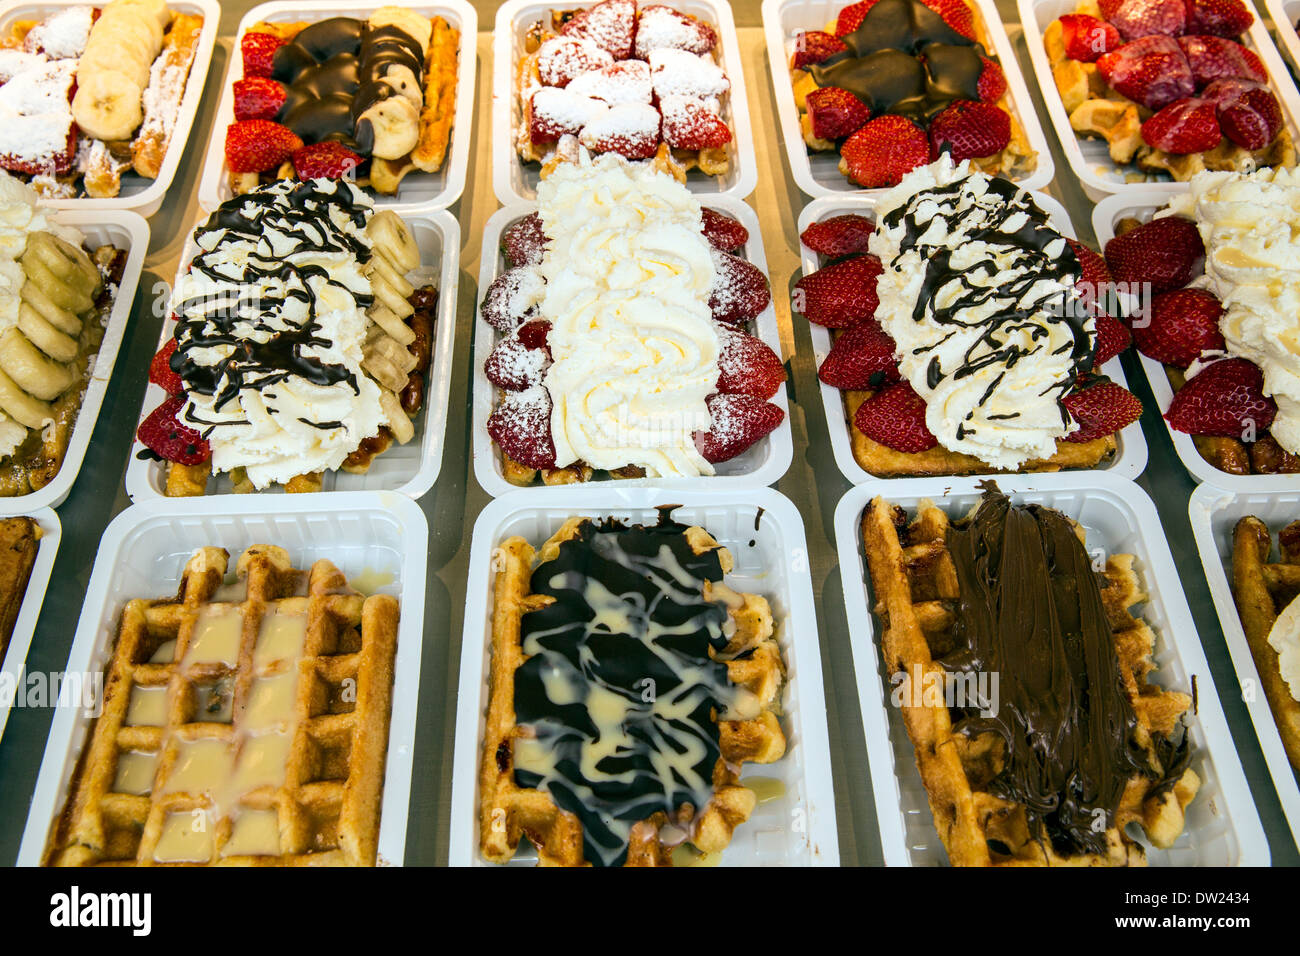 Belgian waffles displayed in Brussels - Stock Image